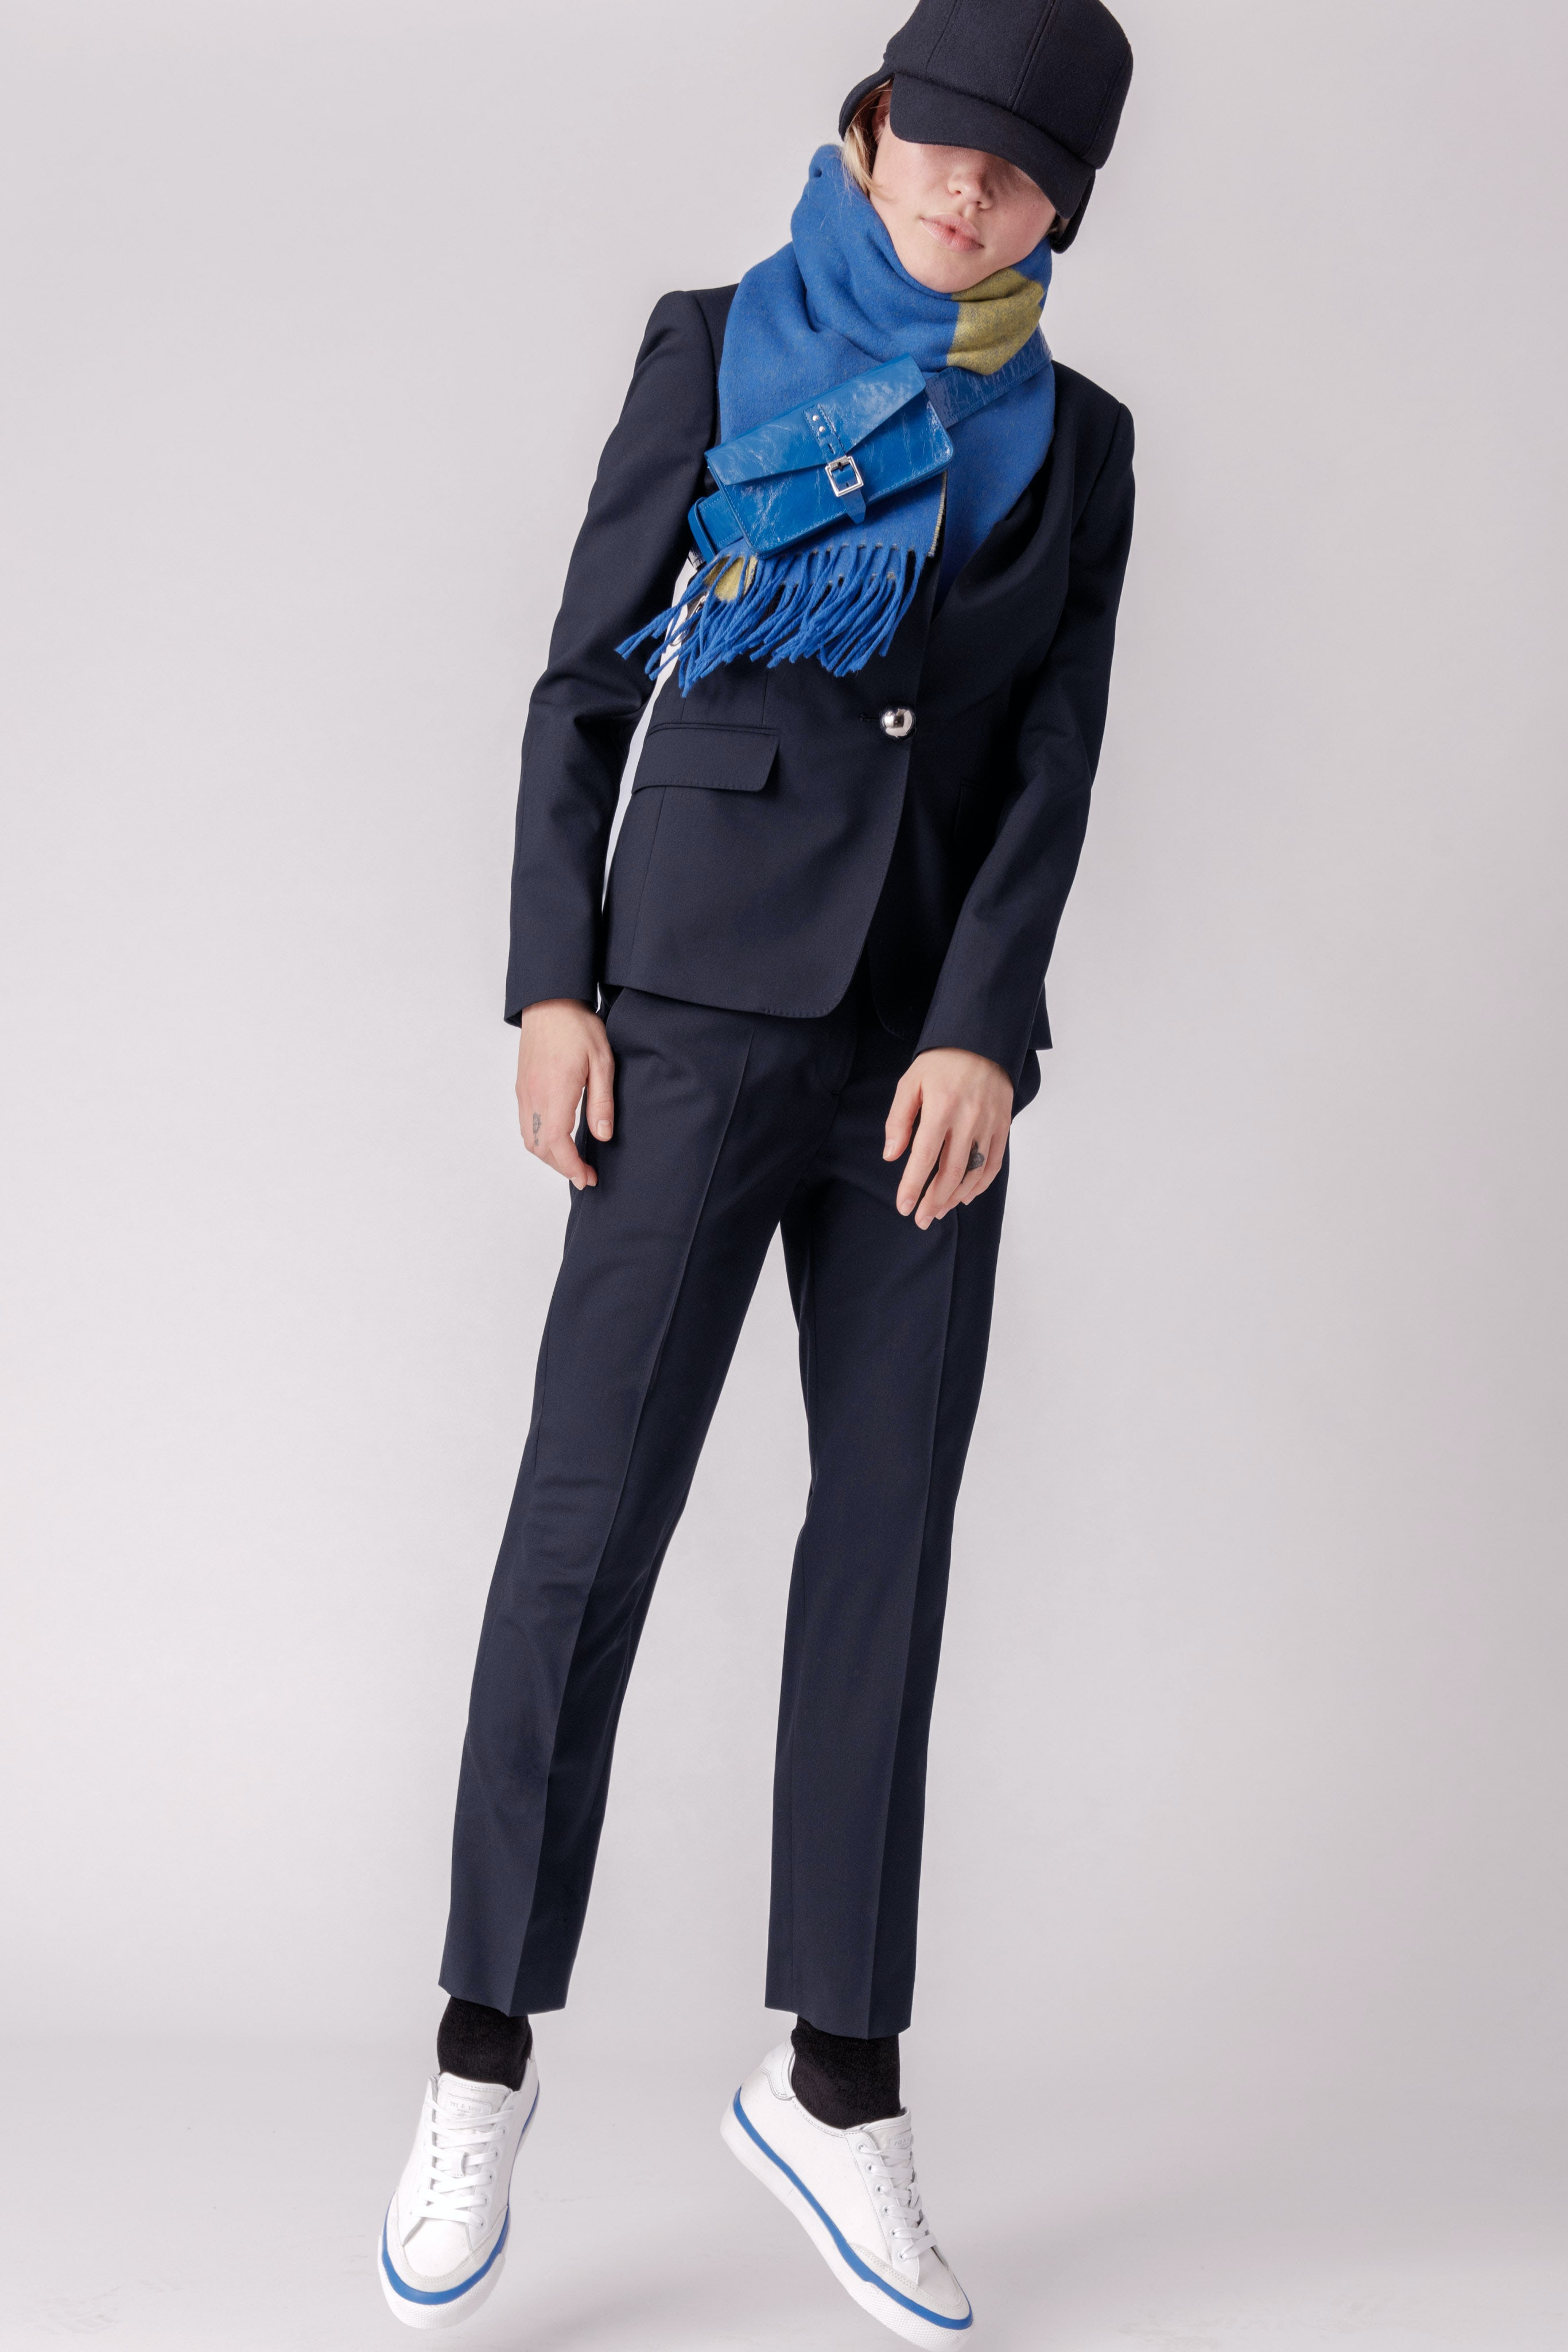 Rag and Bone Blazer with Chanel Boots 2